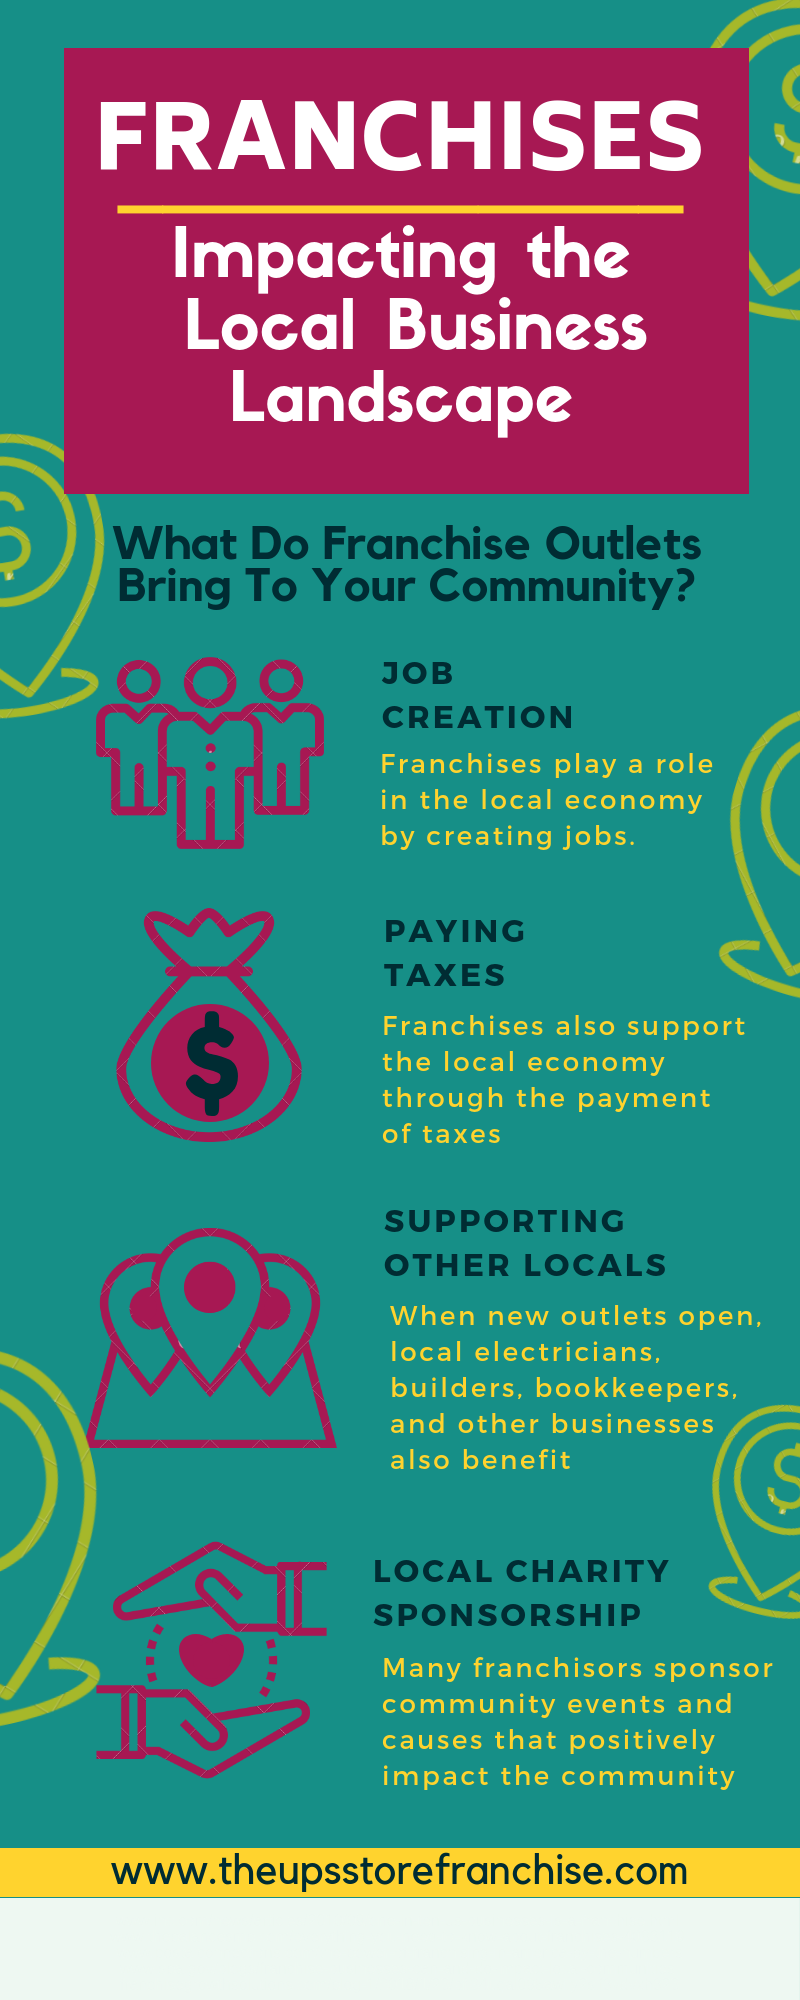 How-franchises-impact-the-local-business-landscape #infographic